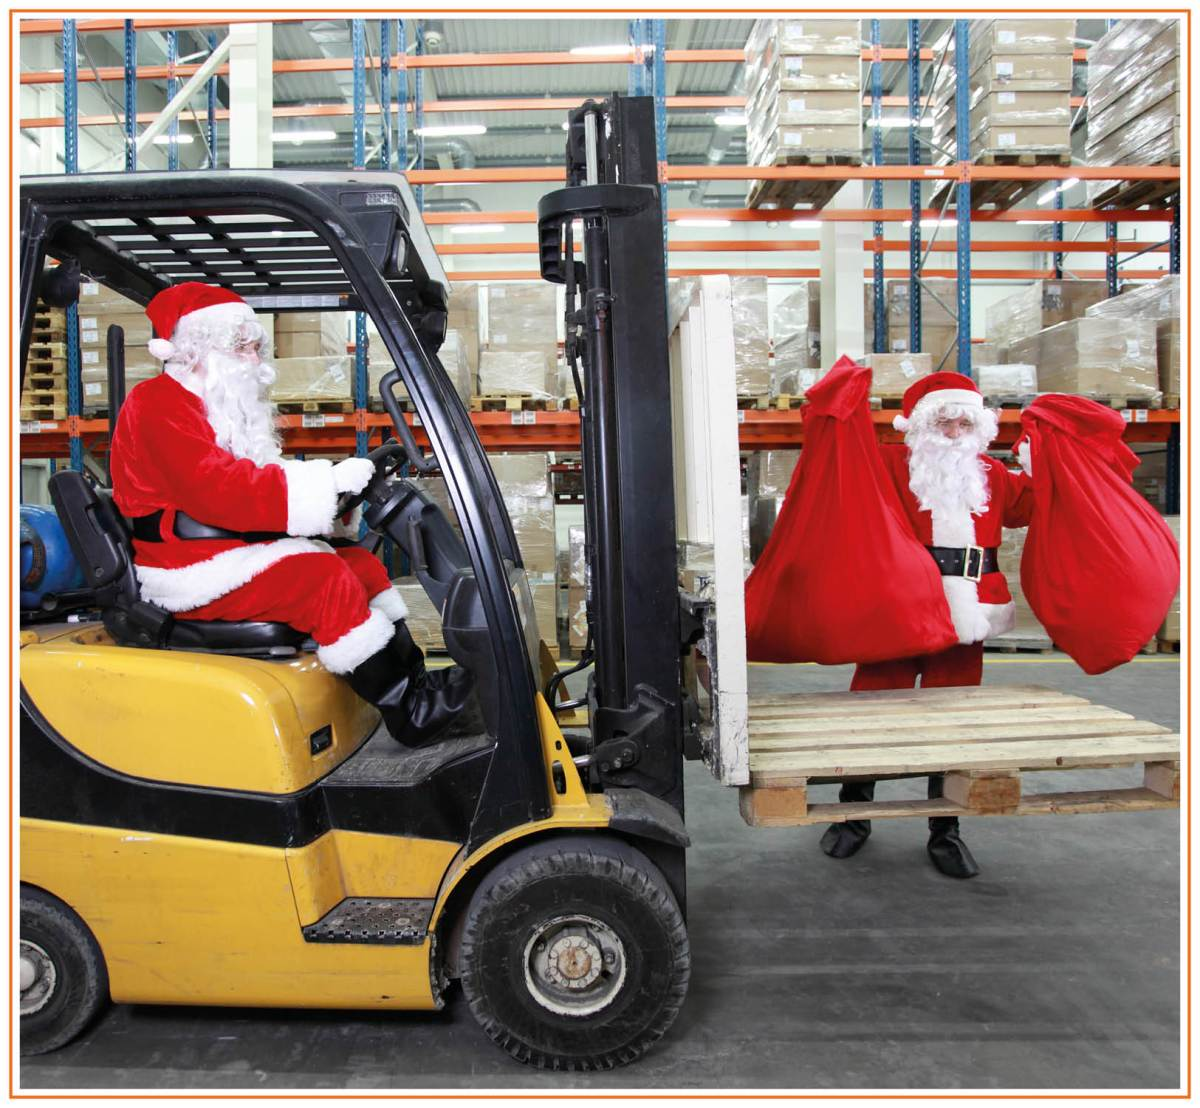 https://i2.wp.com/haultech.co.uk/wp-content/uploads/2020/11/HaulTech-Transport-and-Warehouse-Management-Software-Supporting-Hauliers-at-Christmas.jpg?fit=1200%2C1108&ssl=1